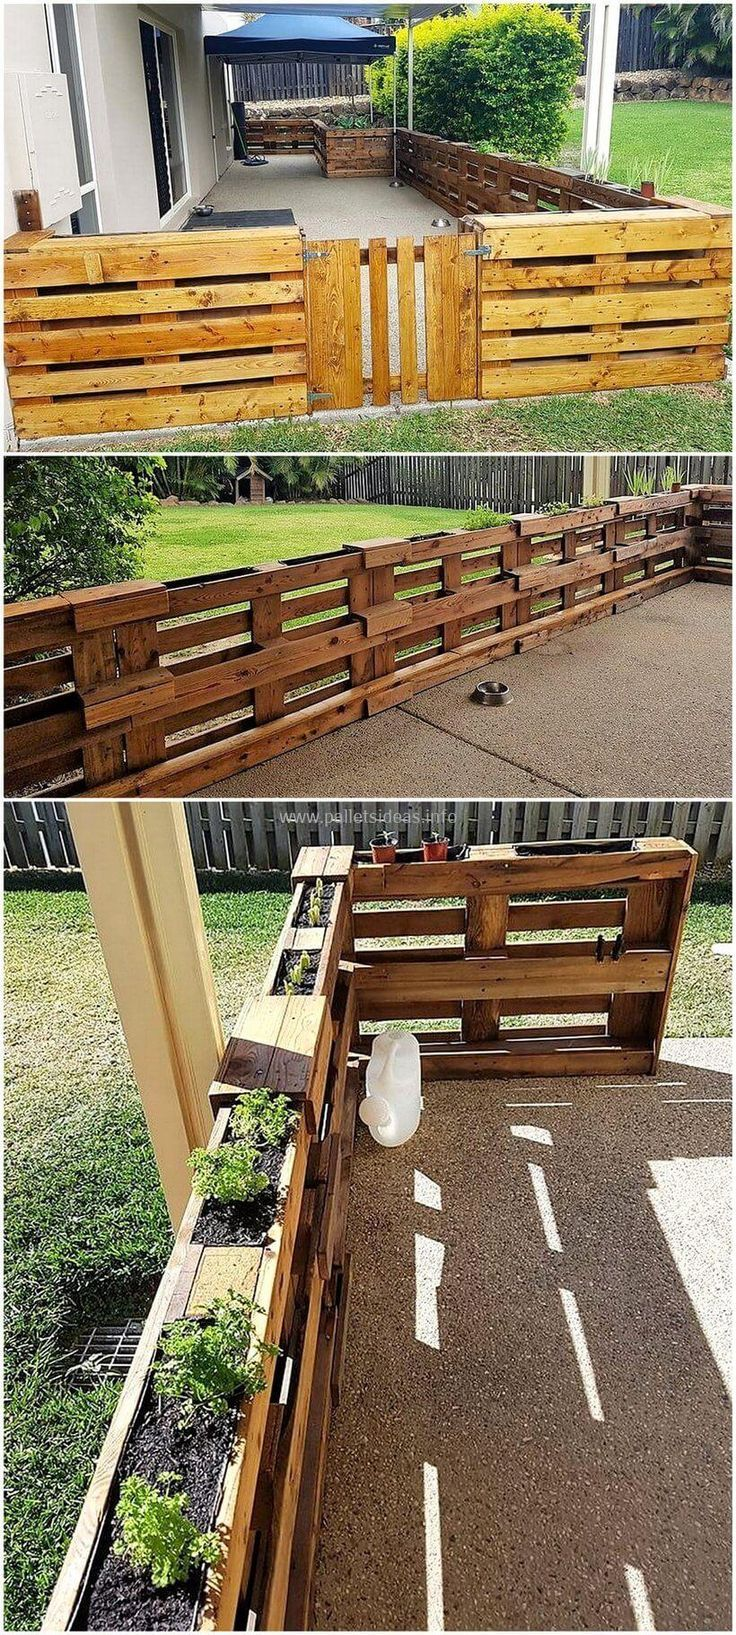 Creative diy ideas for wood pallet recyling projects shtepi